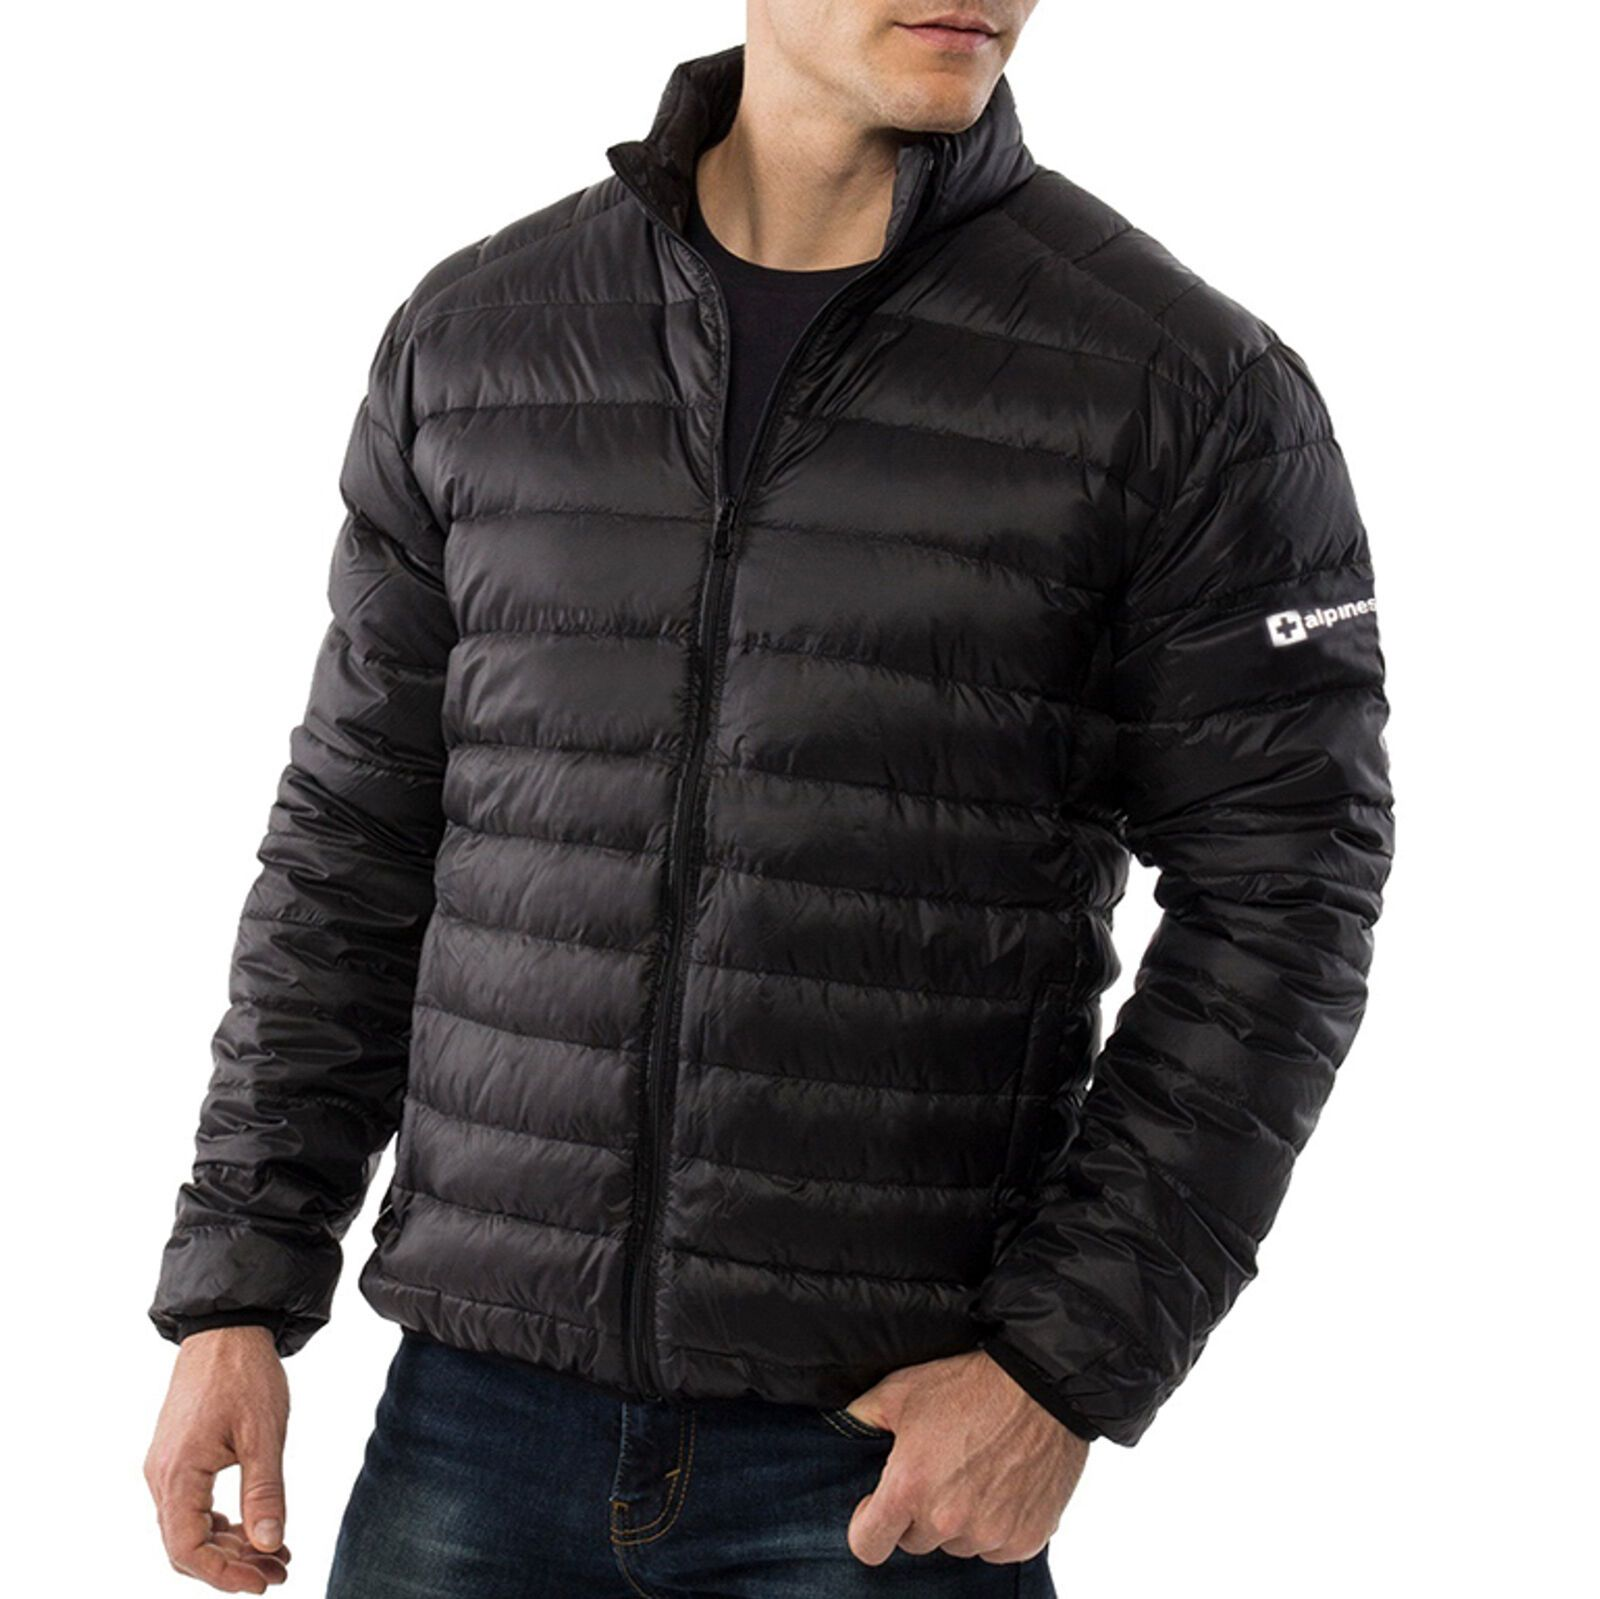 AlpineSwiss Niko Puffer Jacket 34.99! (With images